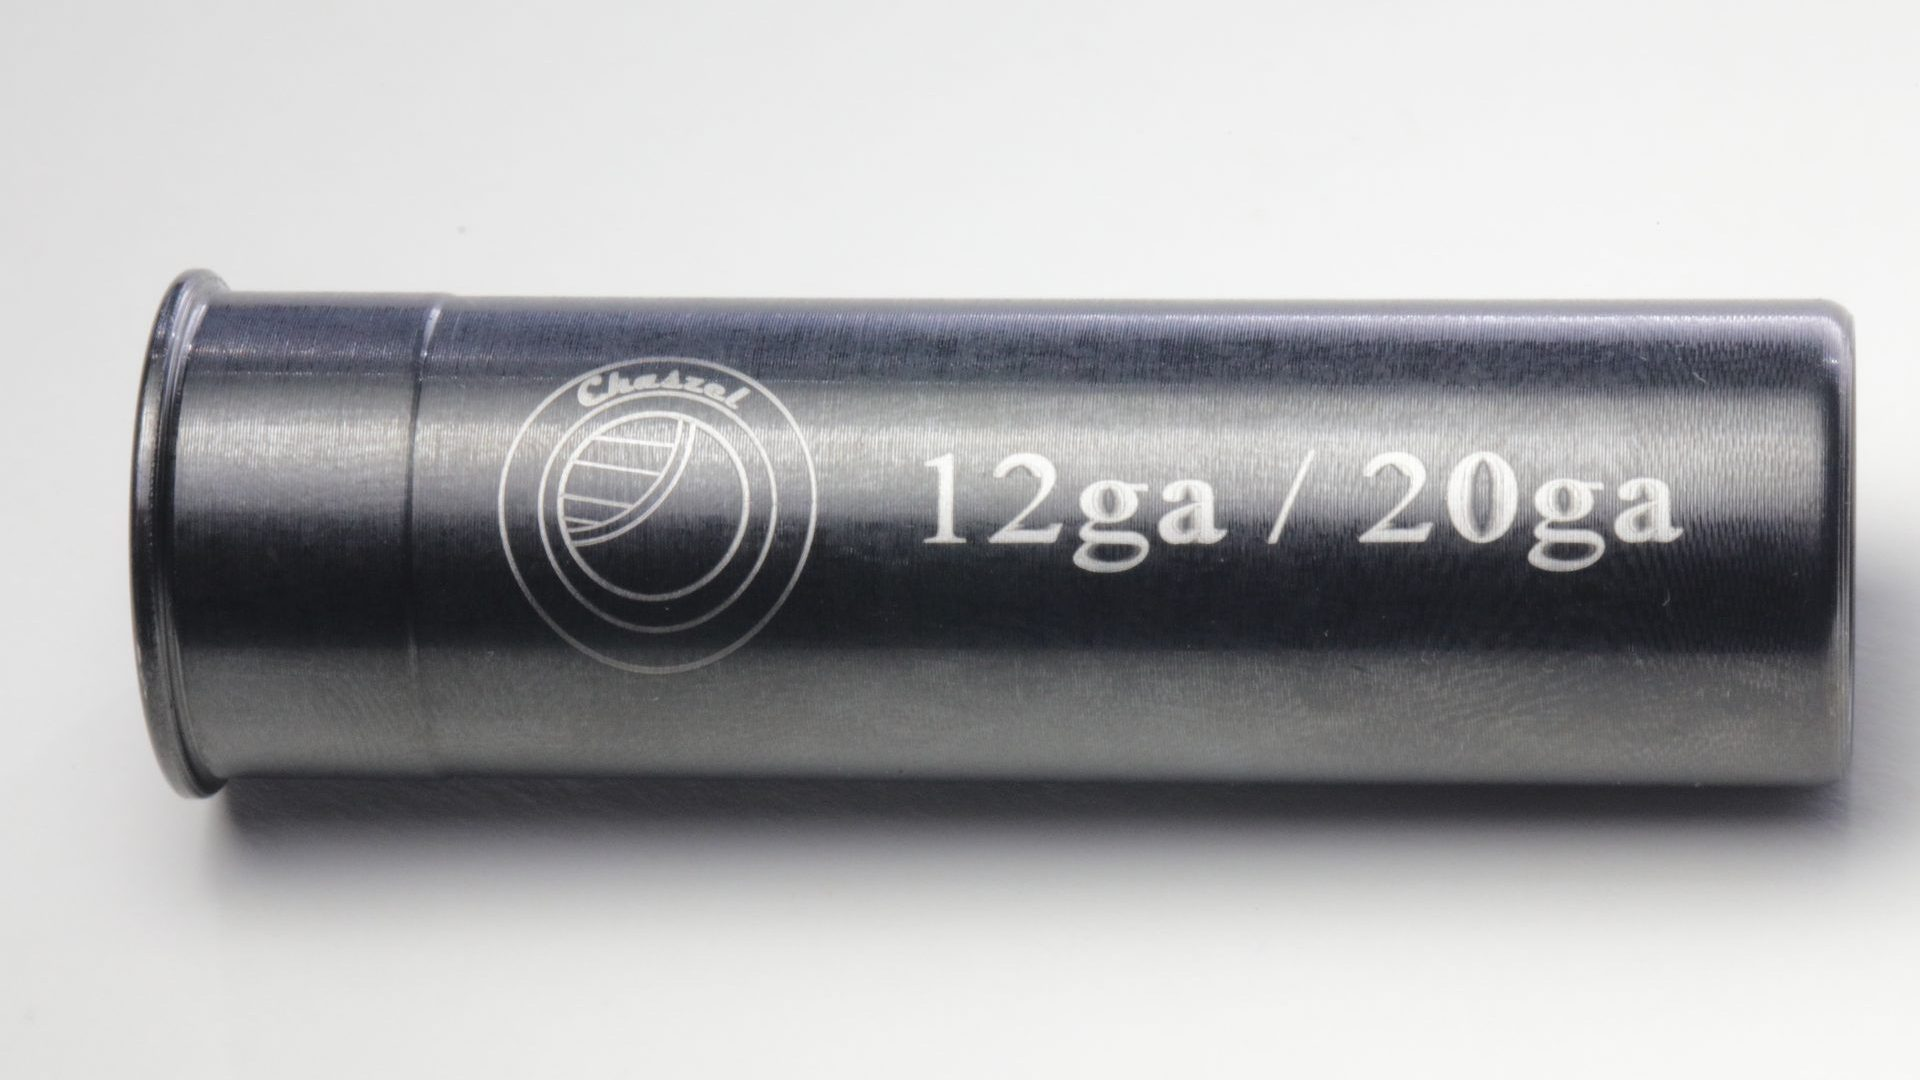 12 Gauge to 20 Gauge Shotgun Adapter